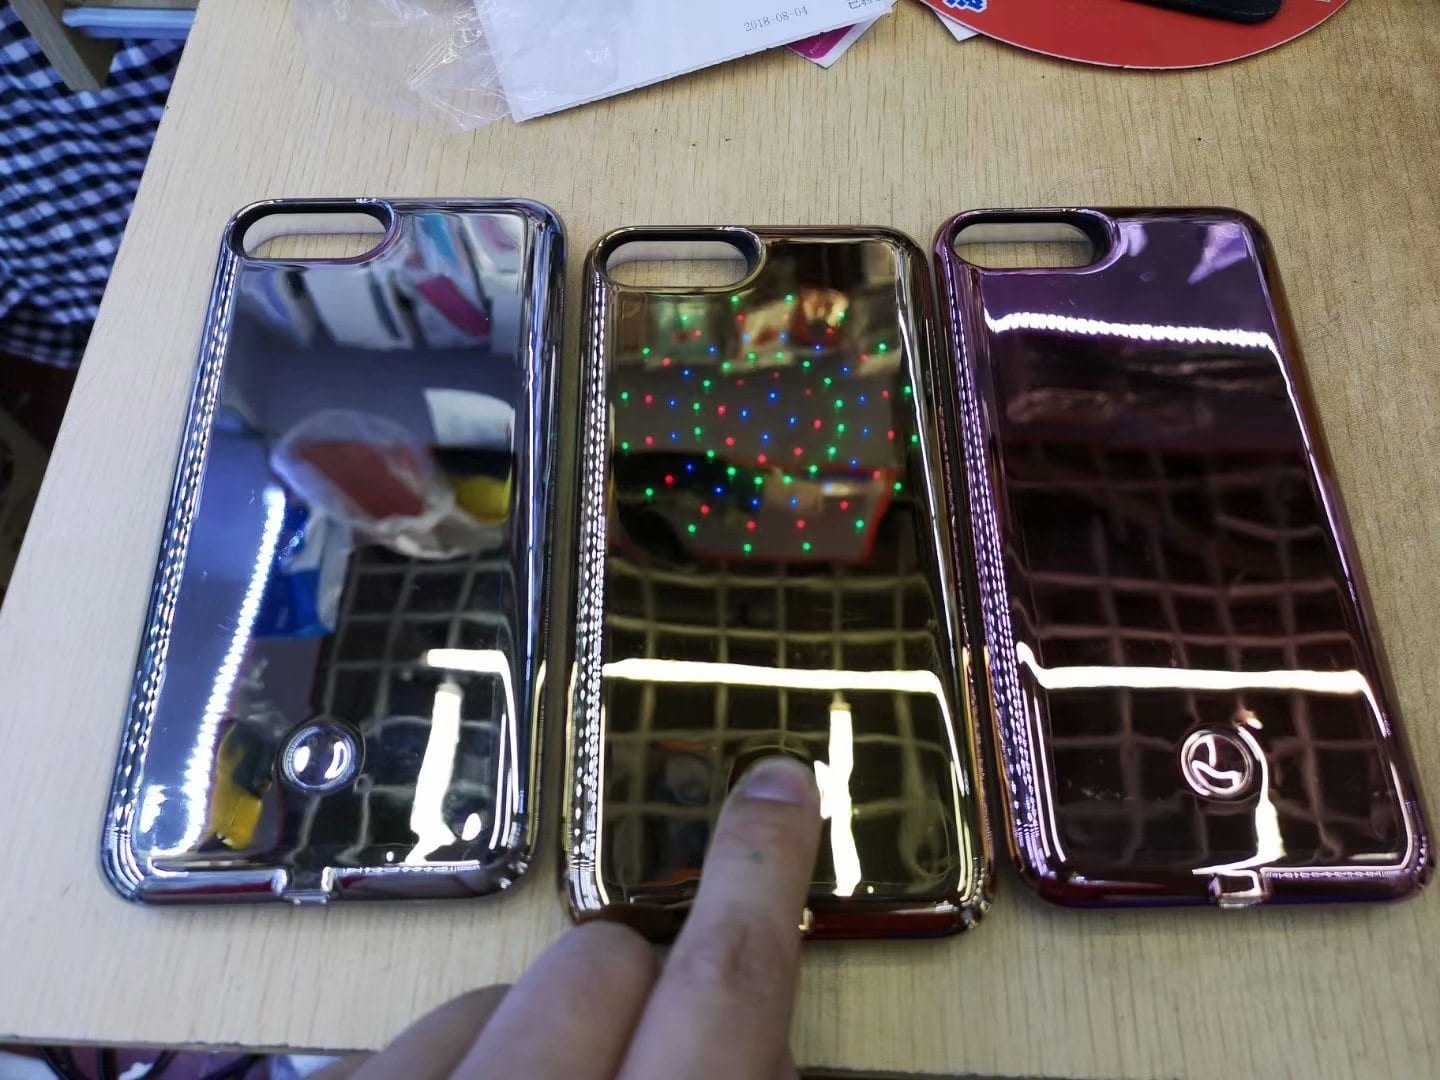 LED Phone Case for iPhone 6/7/8 and iPhone 6/7/8 Plus